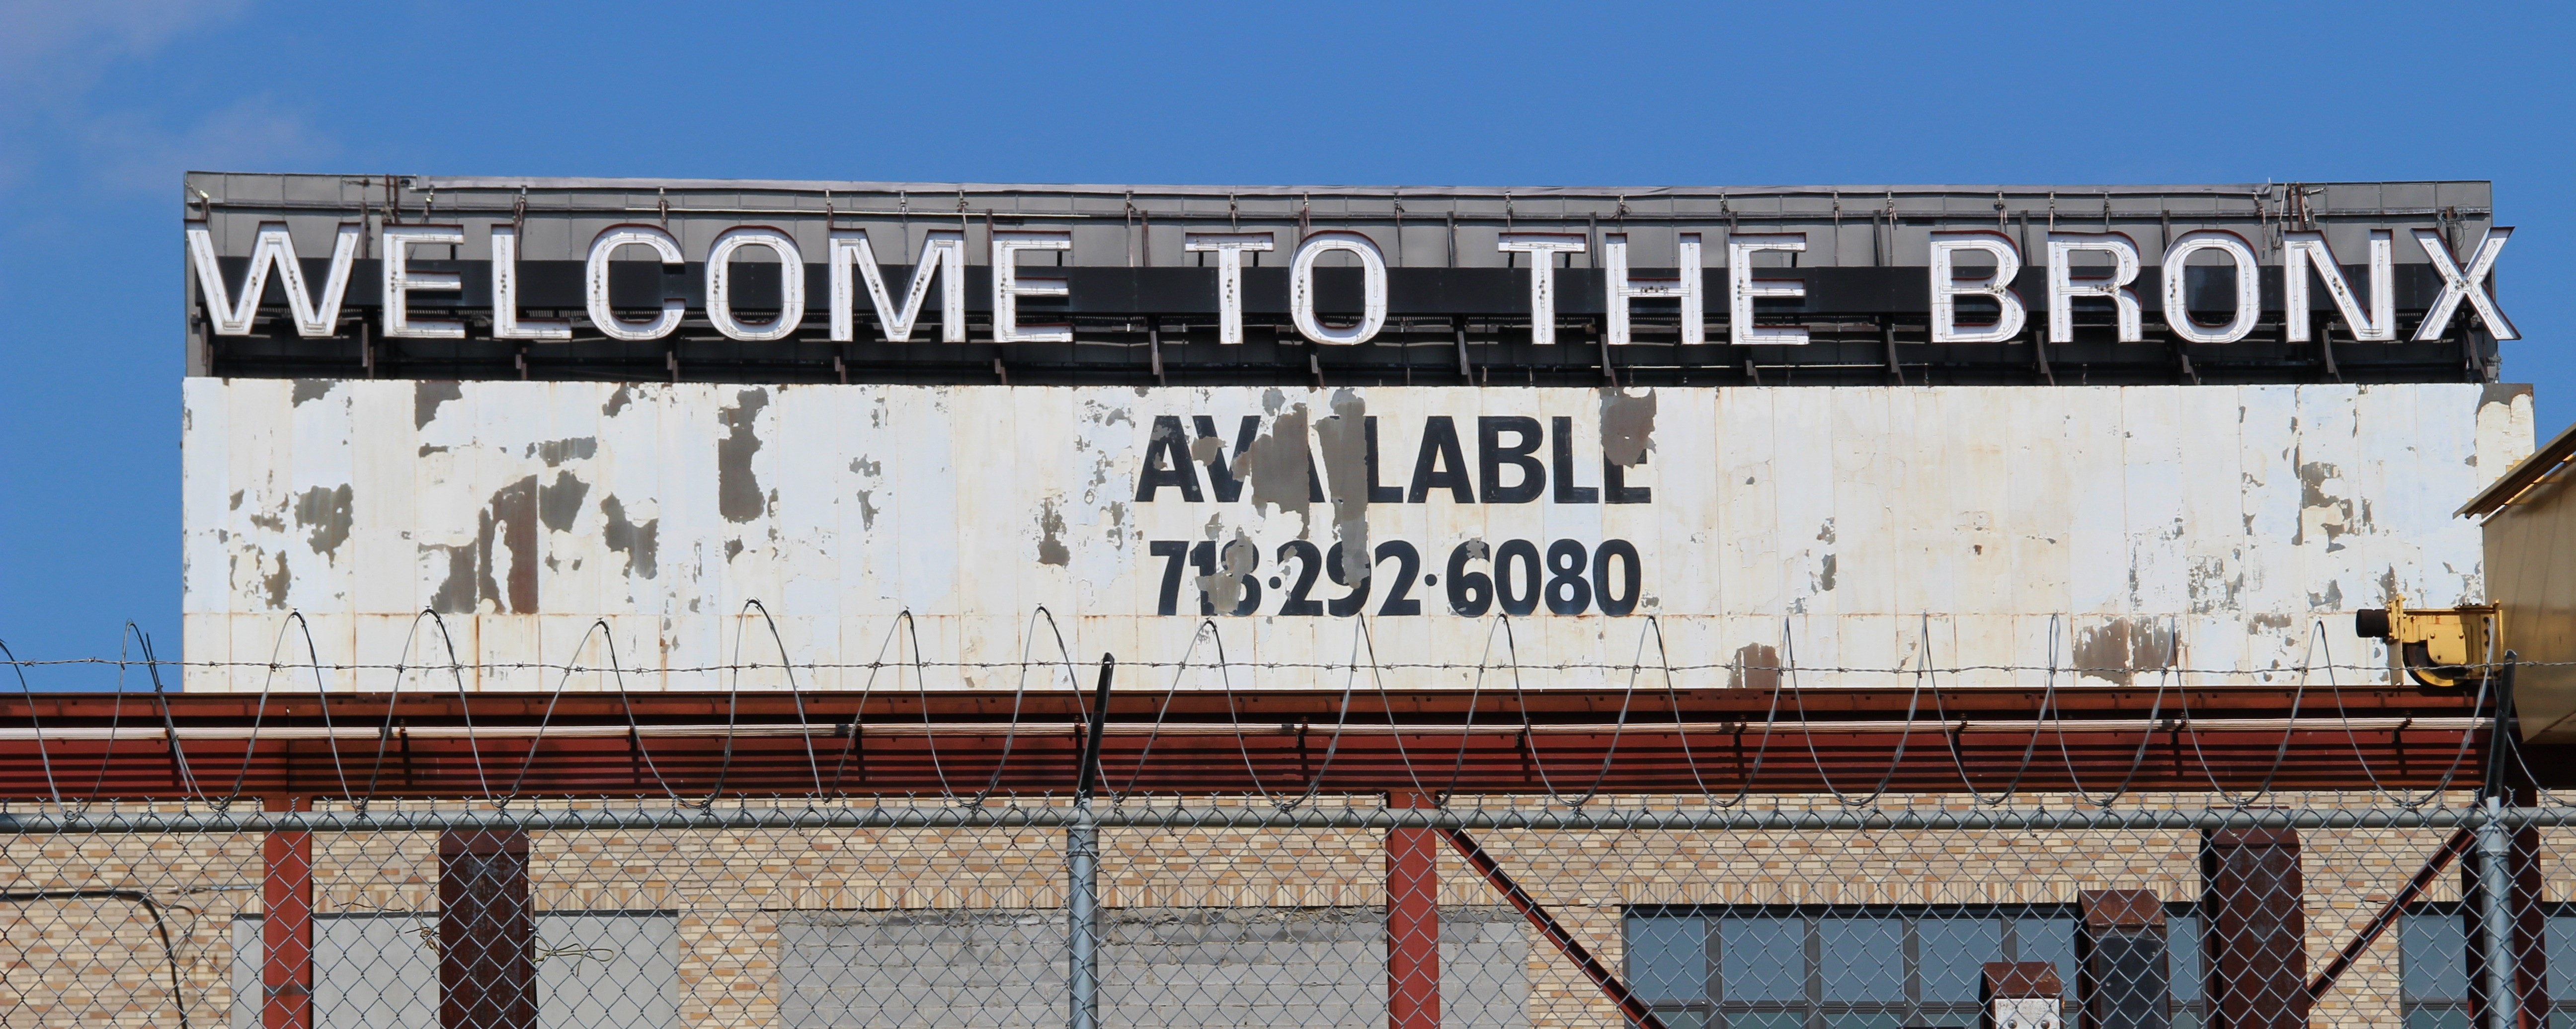 an analysis on environmental racism Los angeles: a stark example of environmental injustice and cumulative  impacts            3  and environmental analysis when permitting operations.